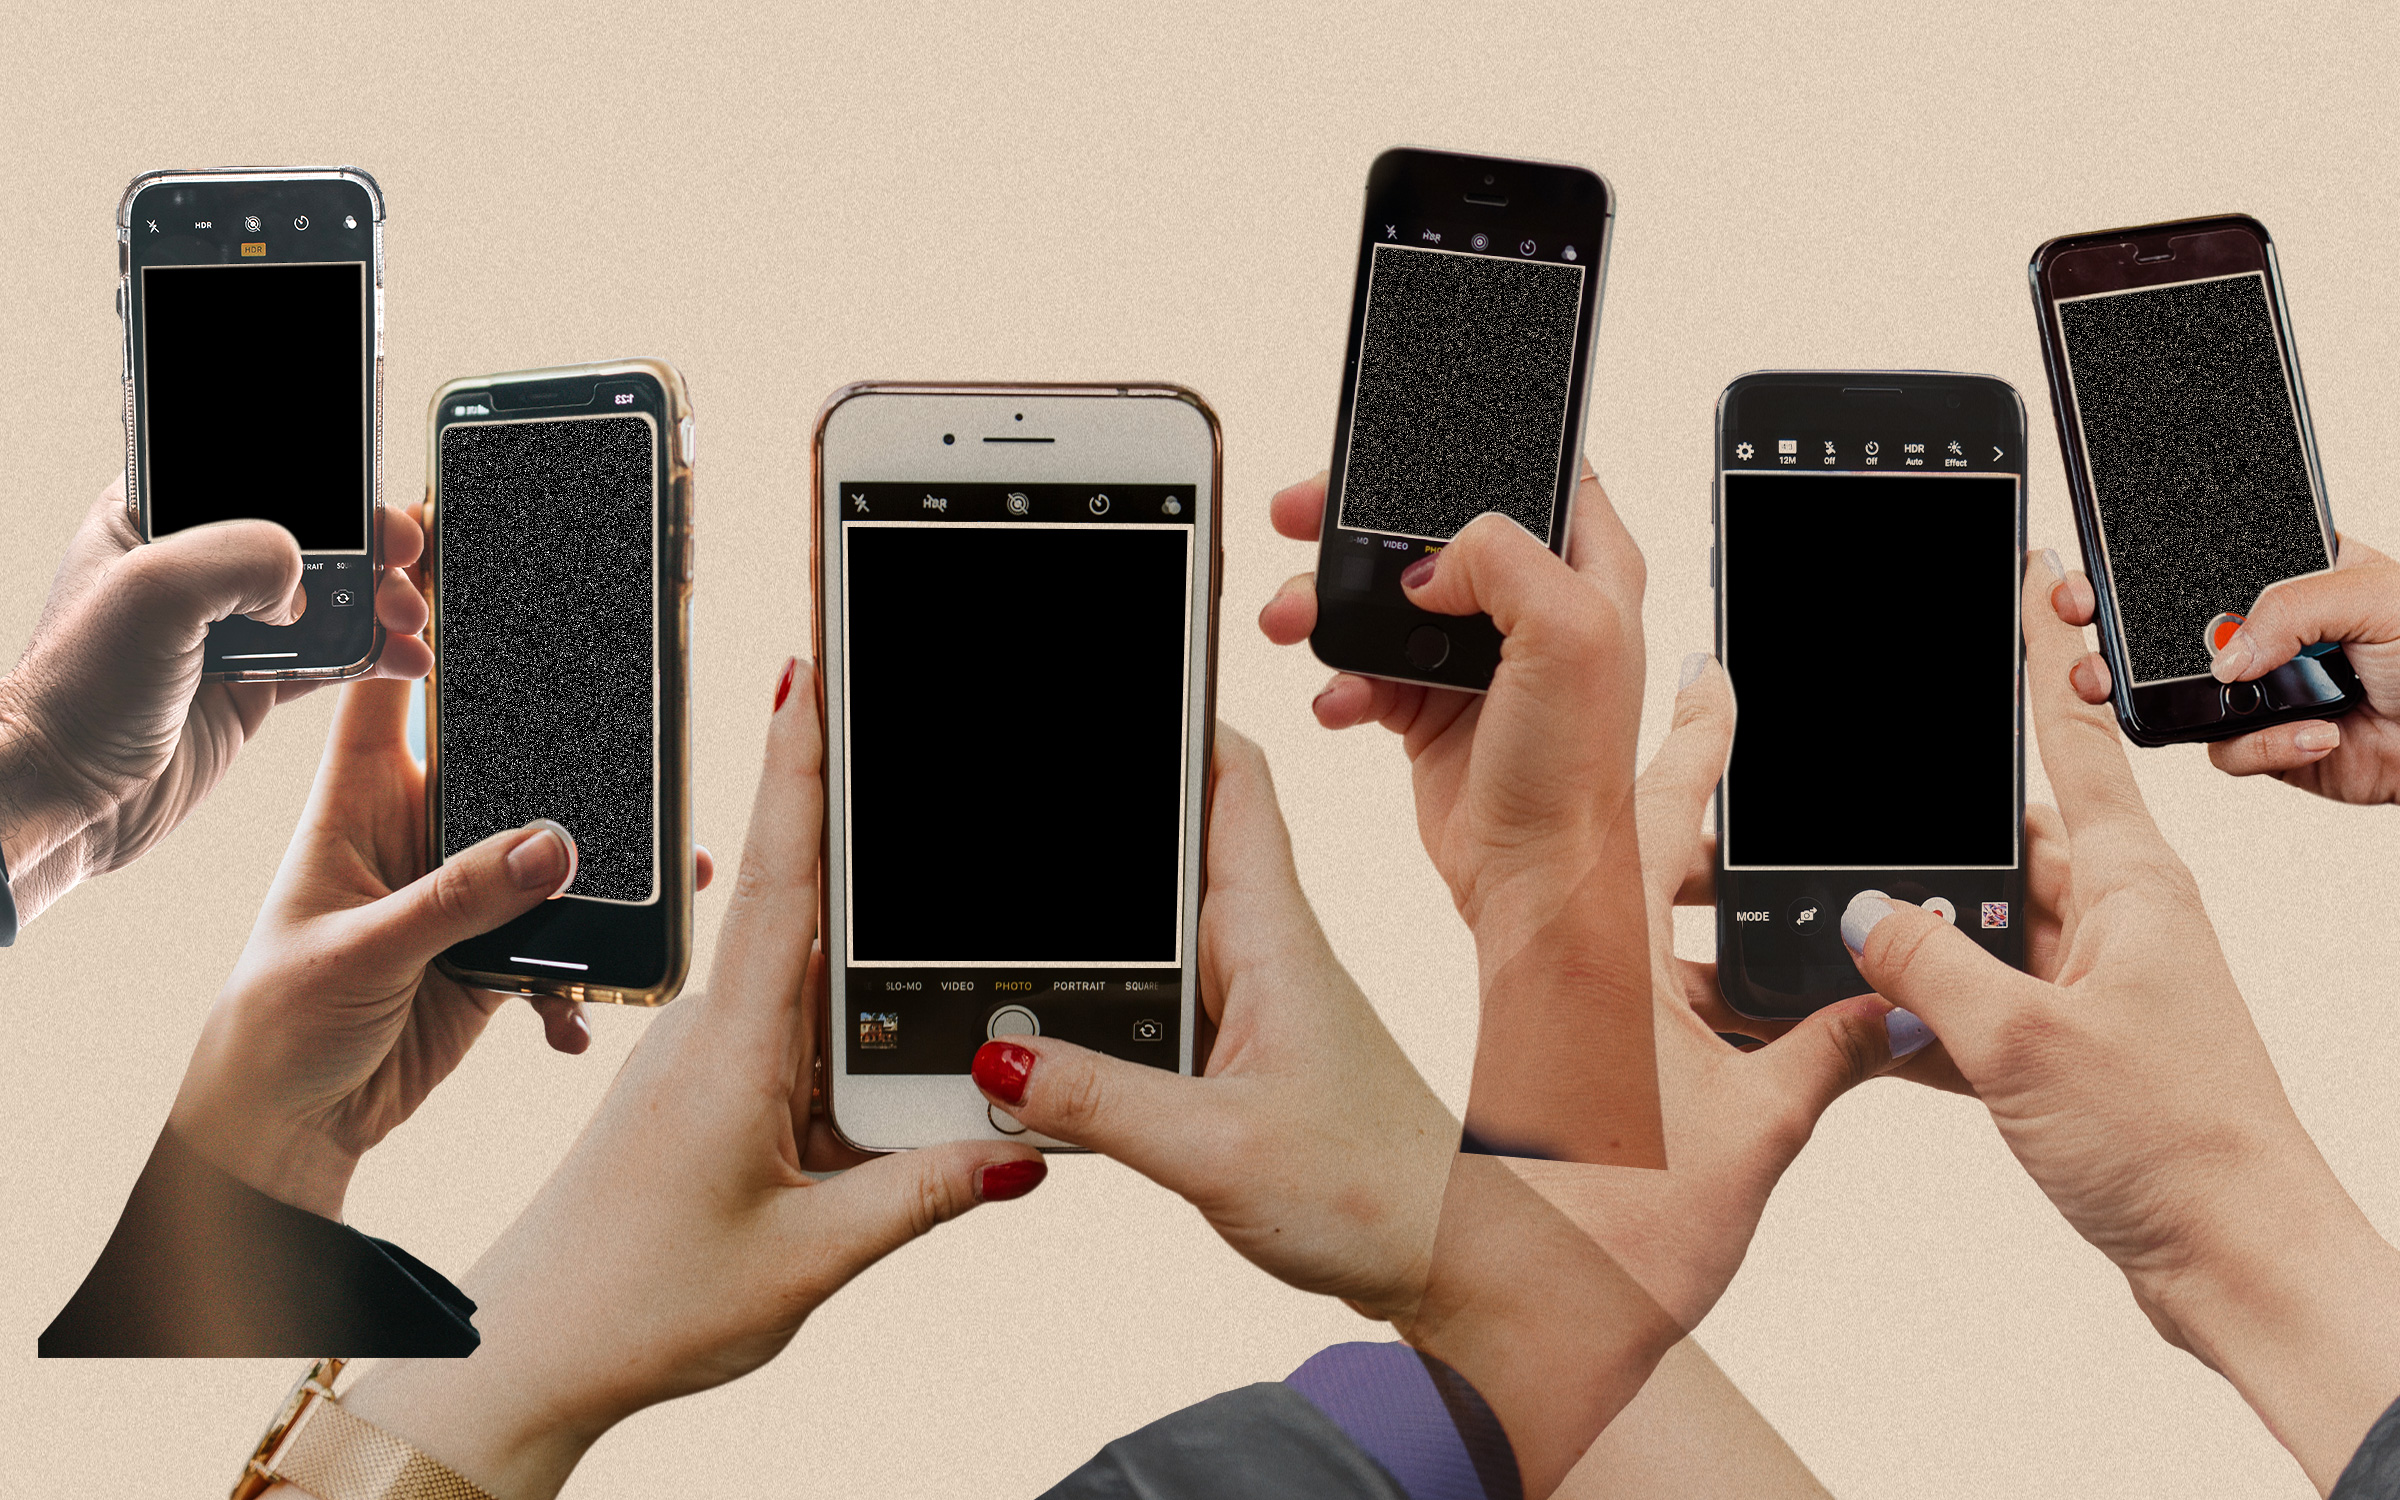 an illustration of three people holding phones with blank, black screens